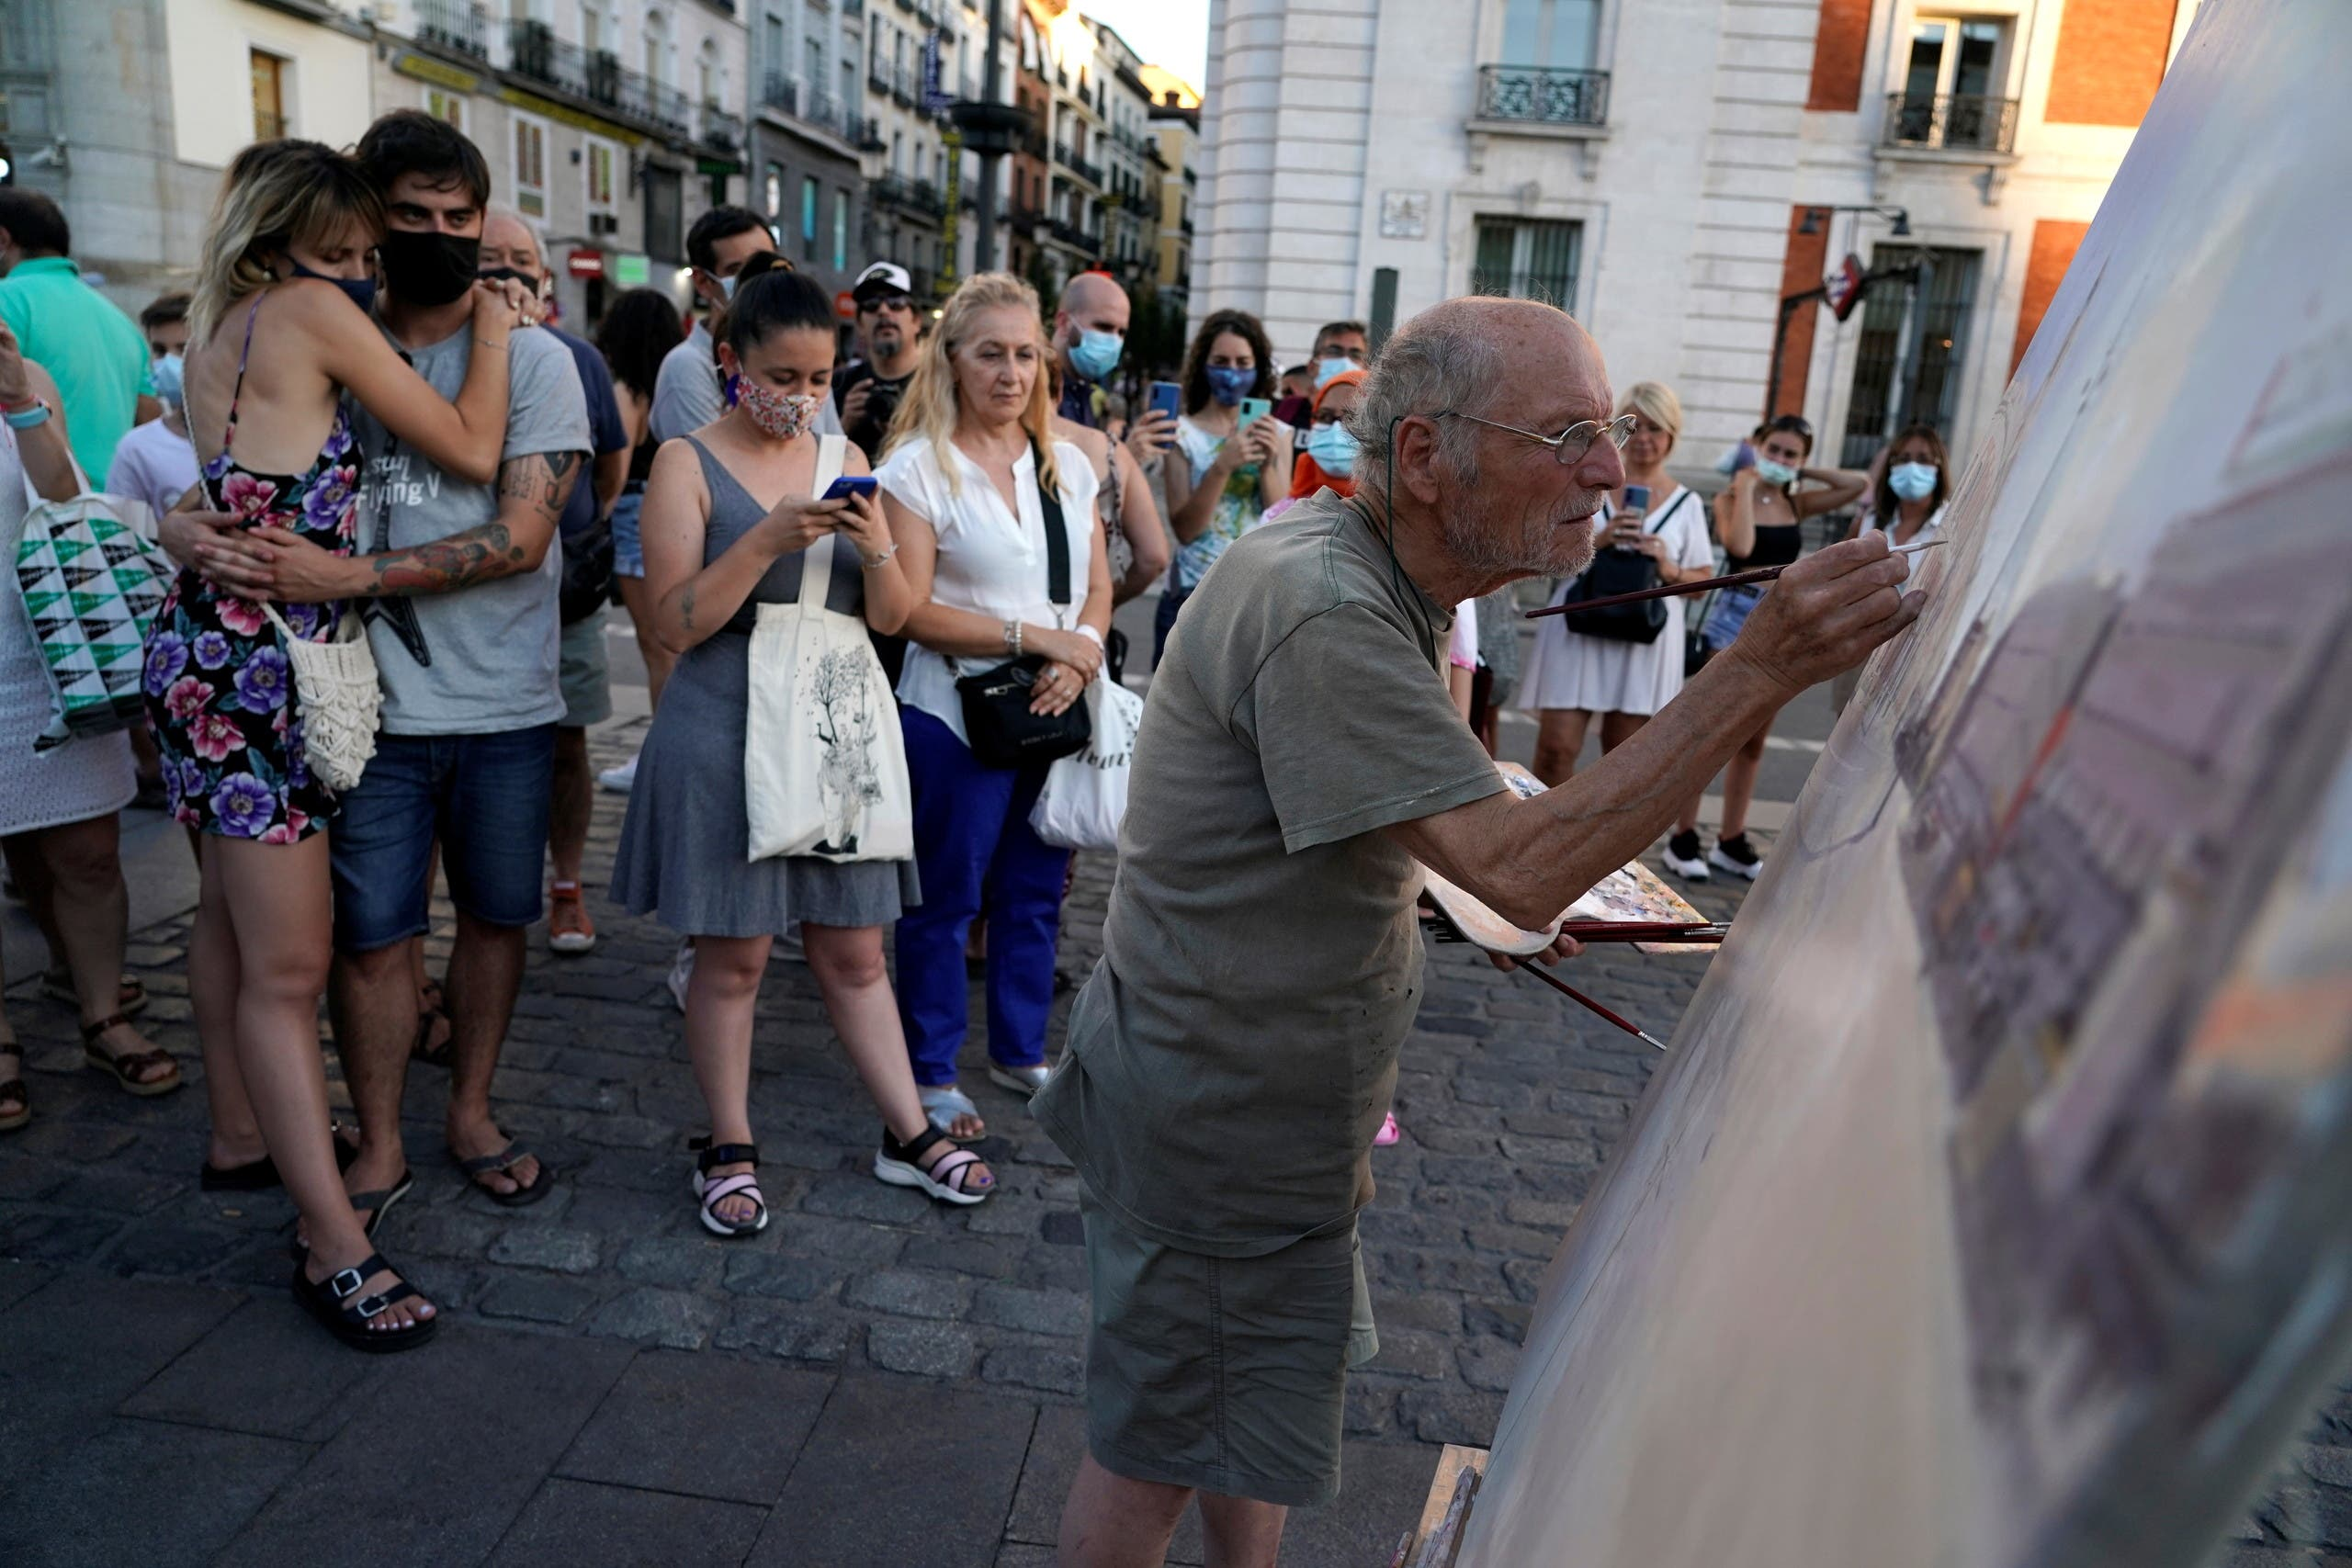 Spanish artist Antonio Lopez works during a session to paint the famous Puerta del Sol square in Madrid, Spain, August 5, 2021. Picture taken August 5, 2021. REUTERS/Juan Medina